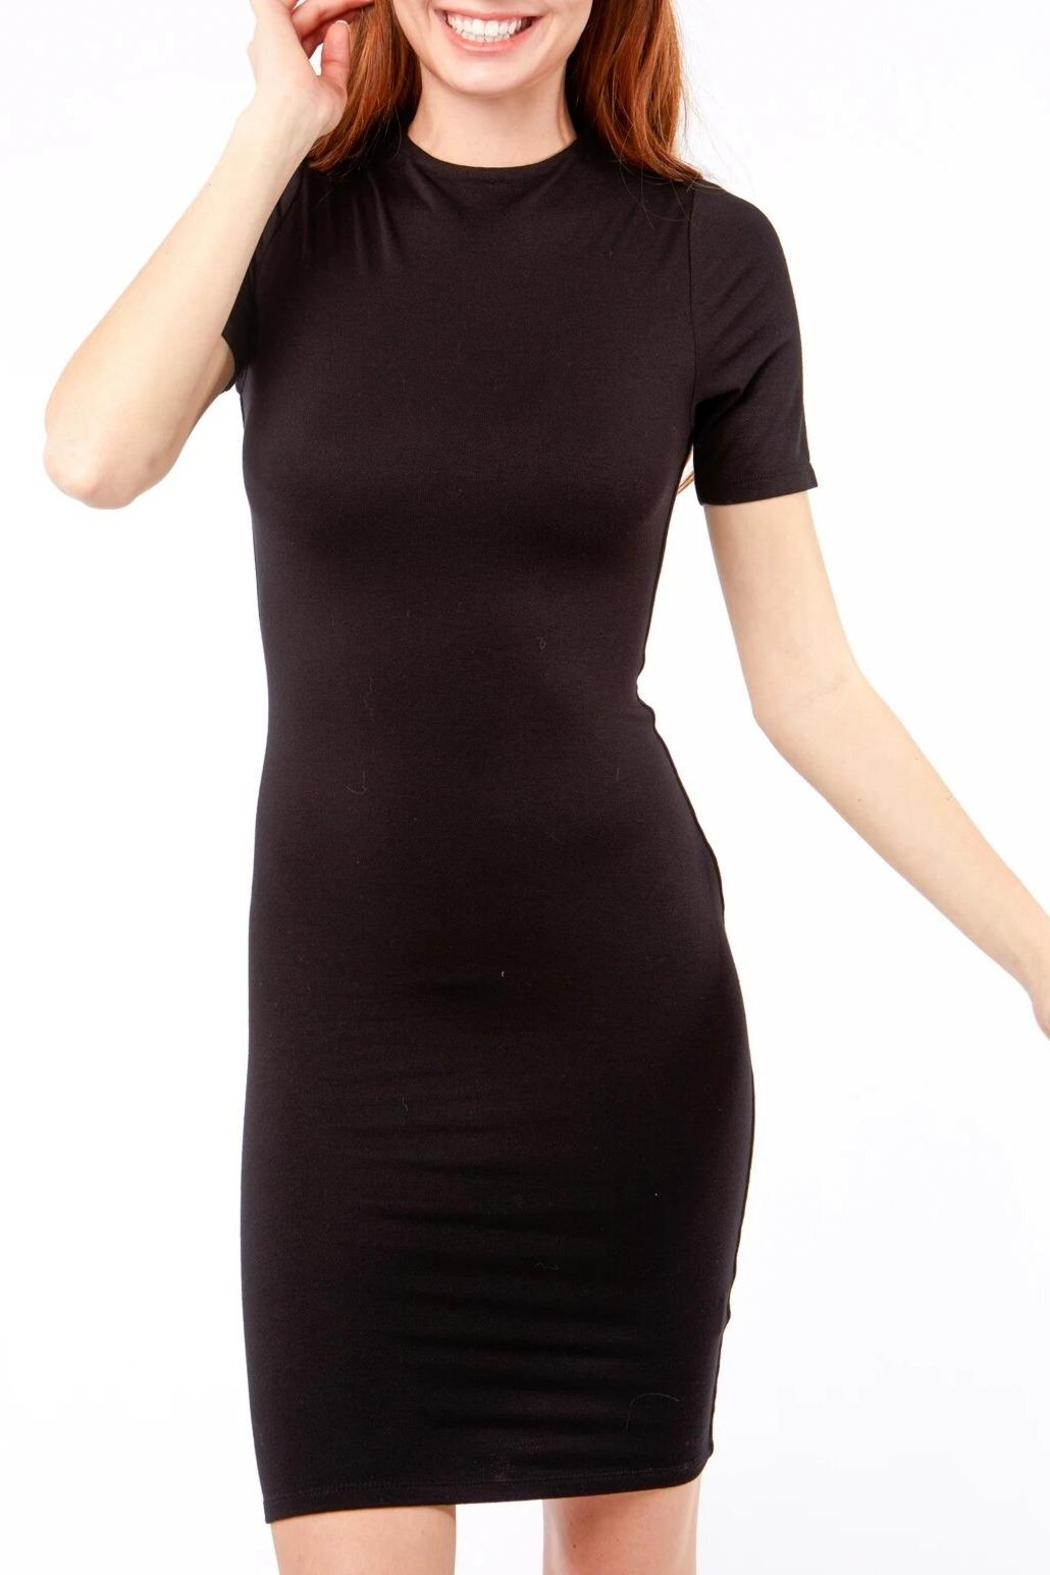 Love Tree Classic Luxe Body Con Little Black Dress - Front Full Image